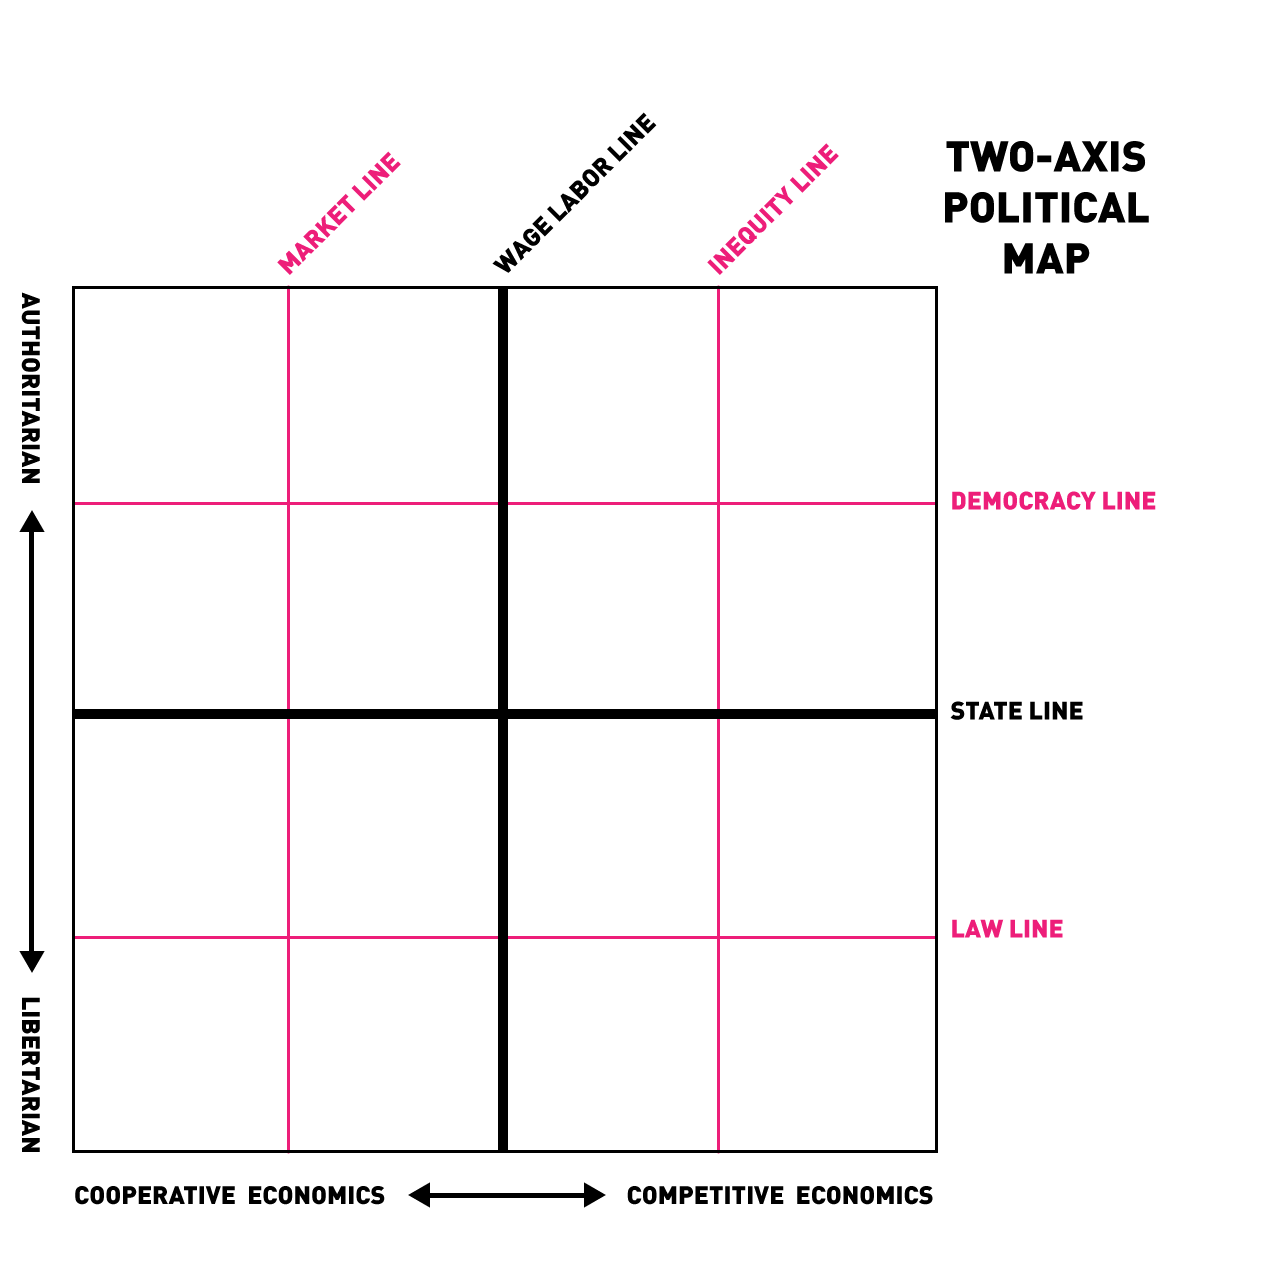 Lower Leftism: Expanding Upon the Political Map | Birds ... on definition of thematic map, definition of europe, definition of human-environment interaction, definition of map key, definition of mental map, definition of relief map, definition of historical map, definition of continent, definition of compass rose, definition of special purpose map, definition of organizational map, definition of hemisphere, definition of global map, definition of map projection, definition of peninsula, definition of transgender, definition of border, definition of contour map, definition of latitude, definition of map legend,